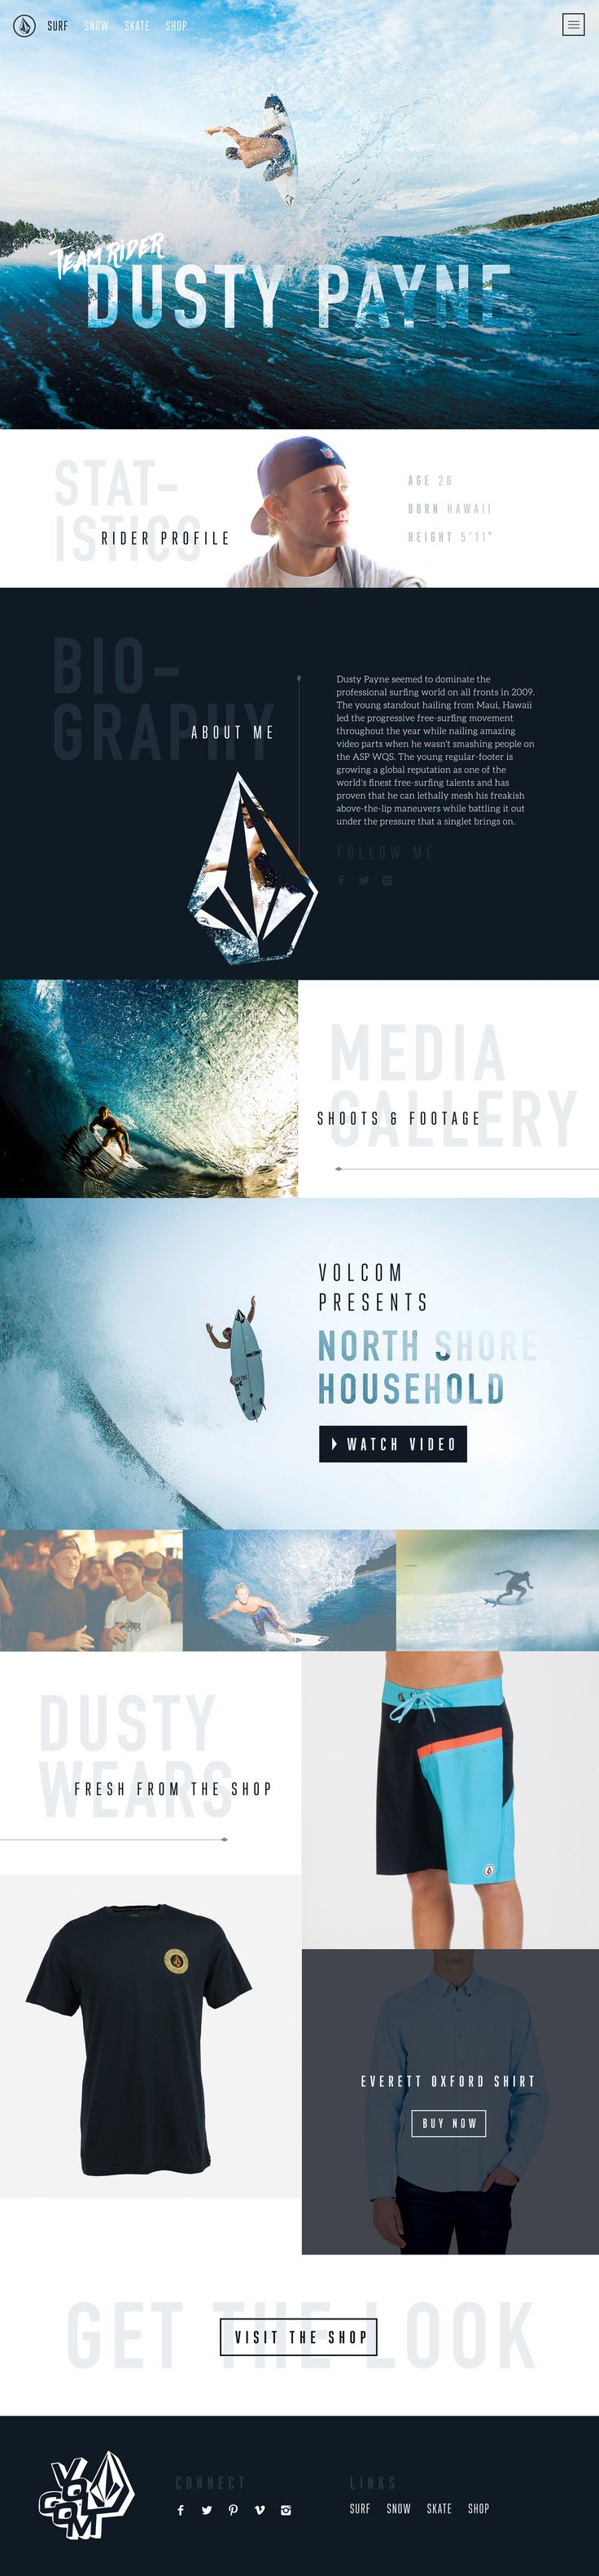 Volcom Website Concept by Nathan Riley for Green Chameleon